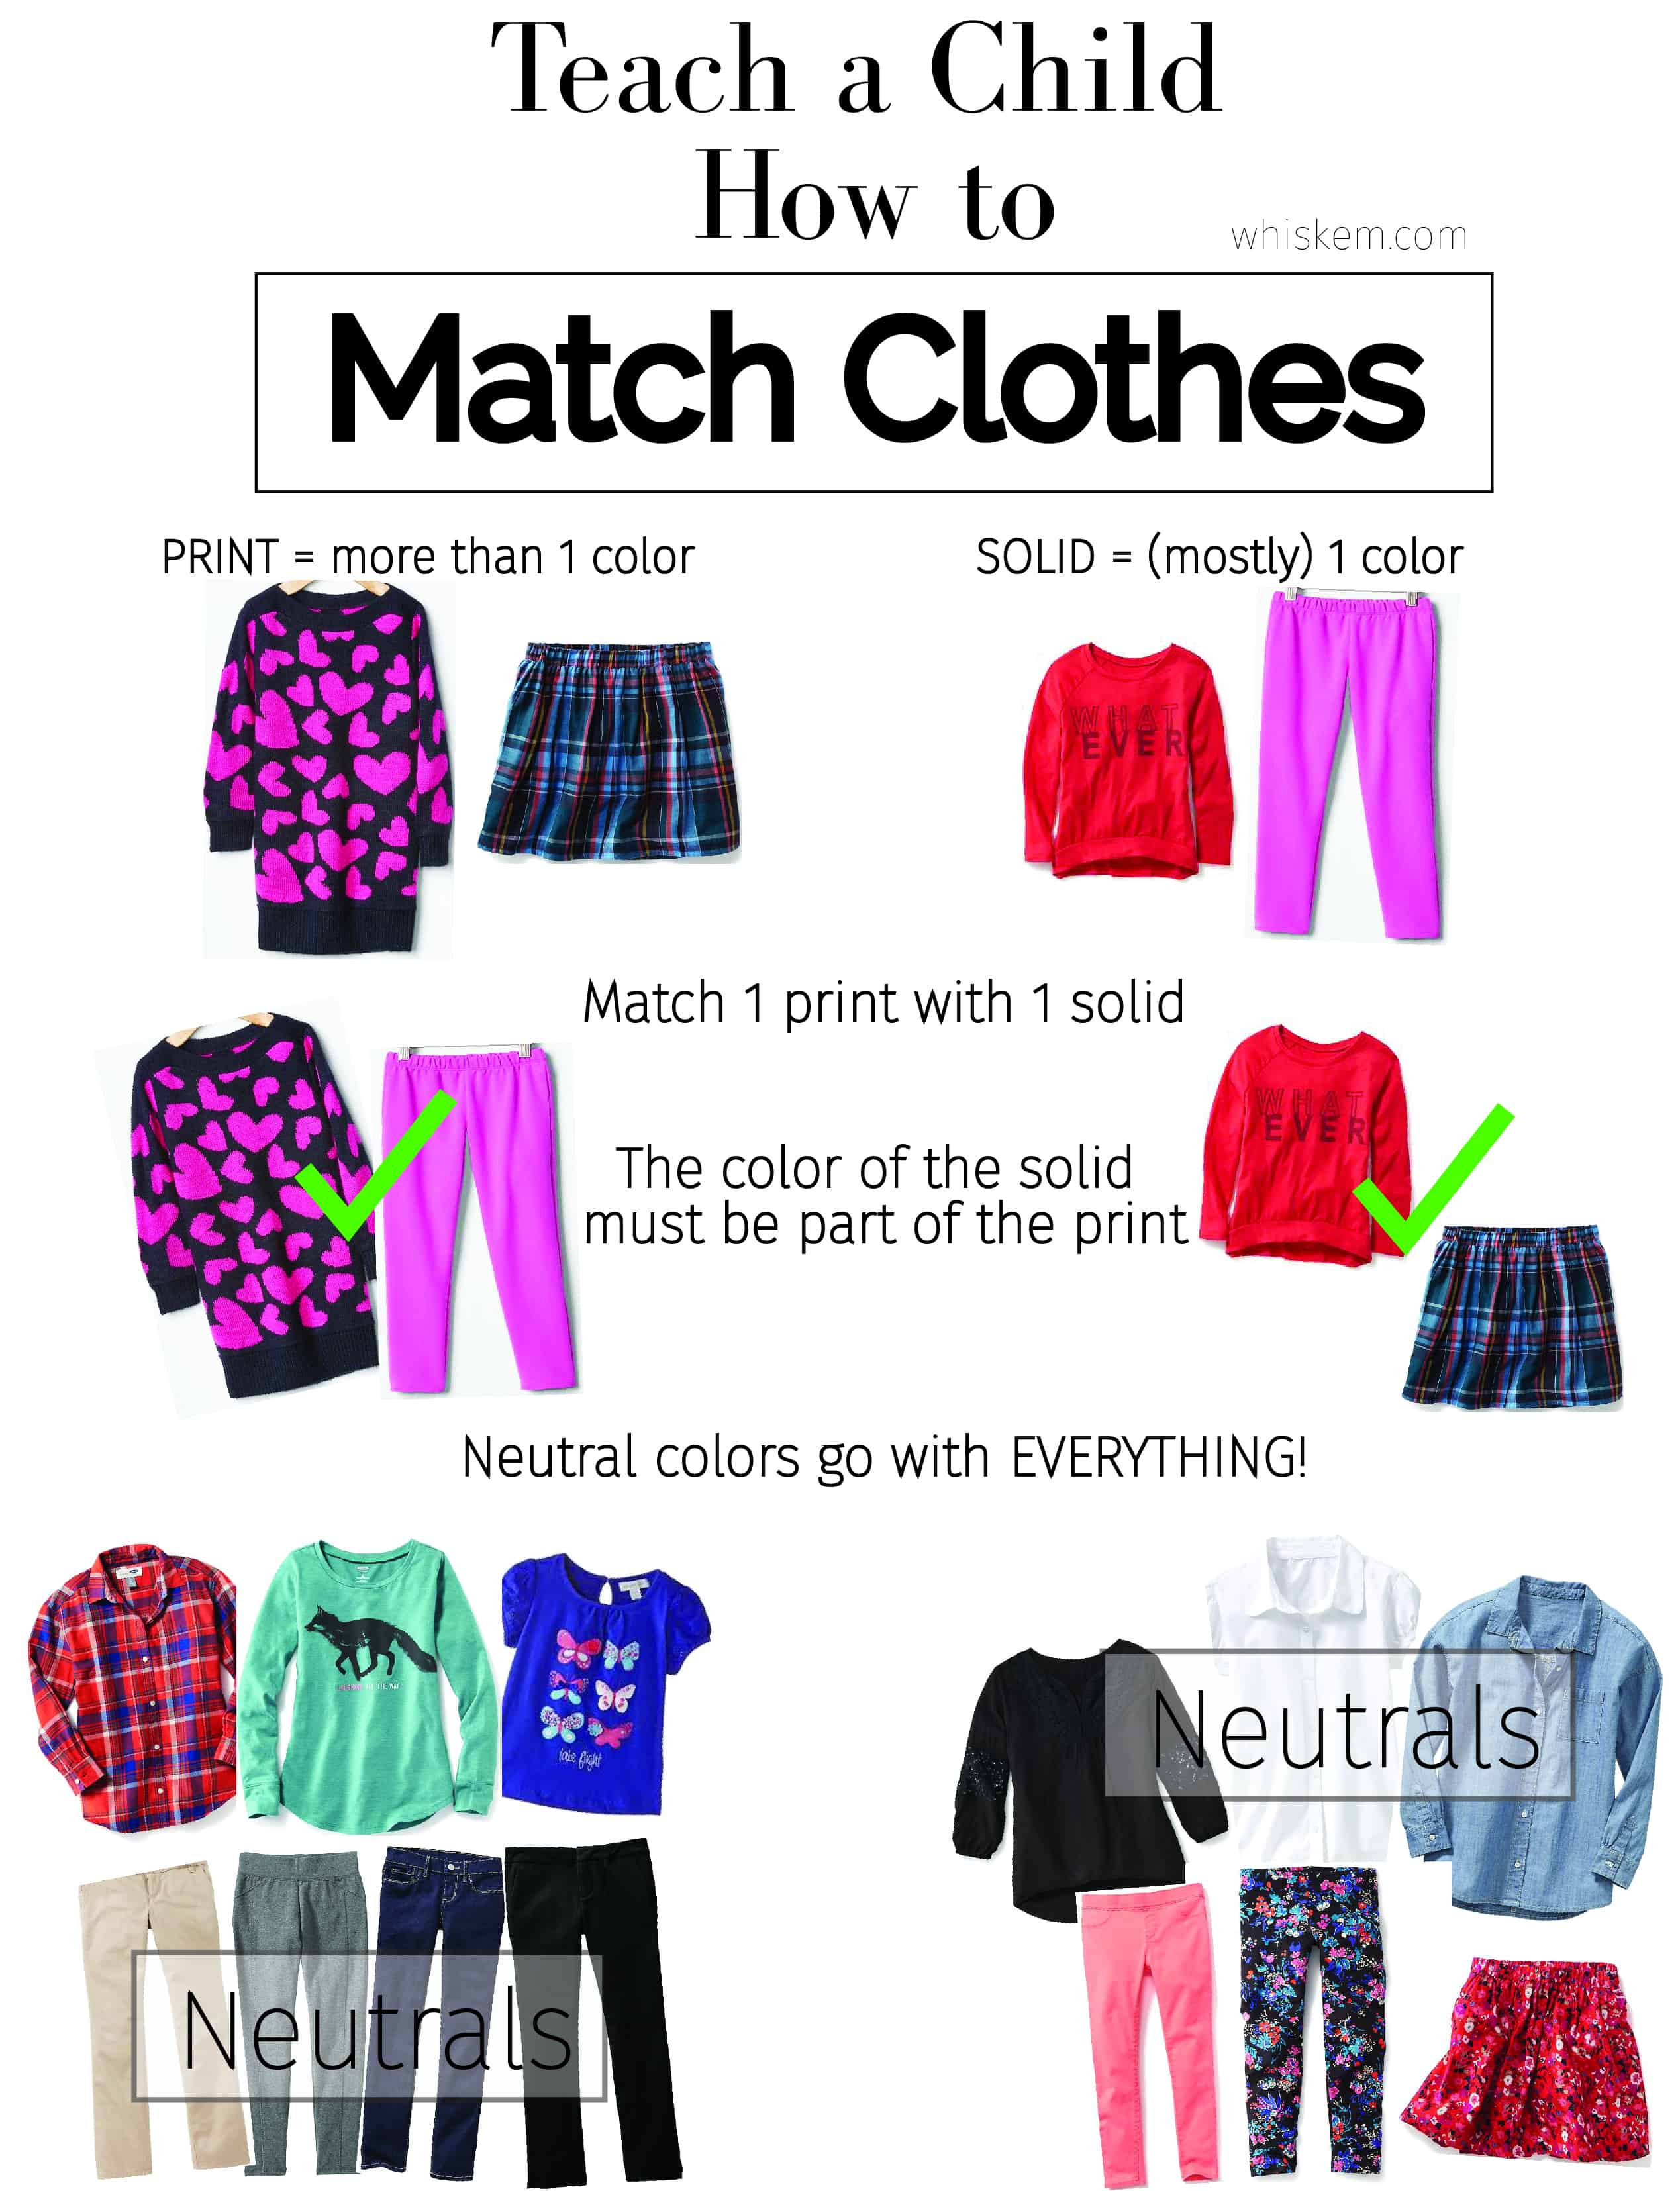 Teach a Child How to Match Clothes